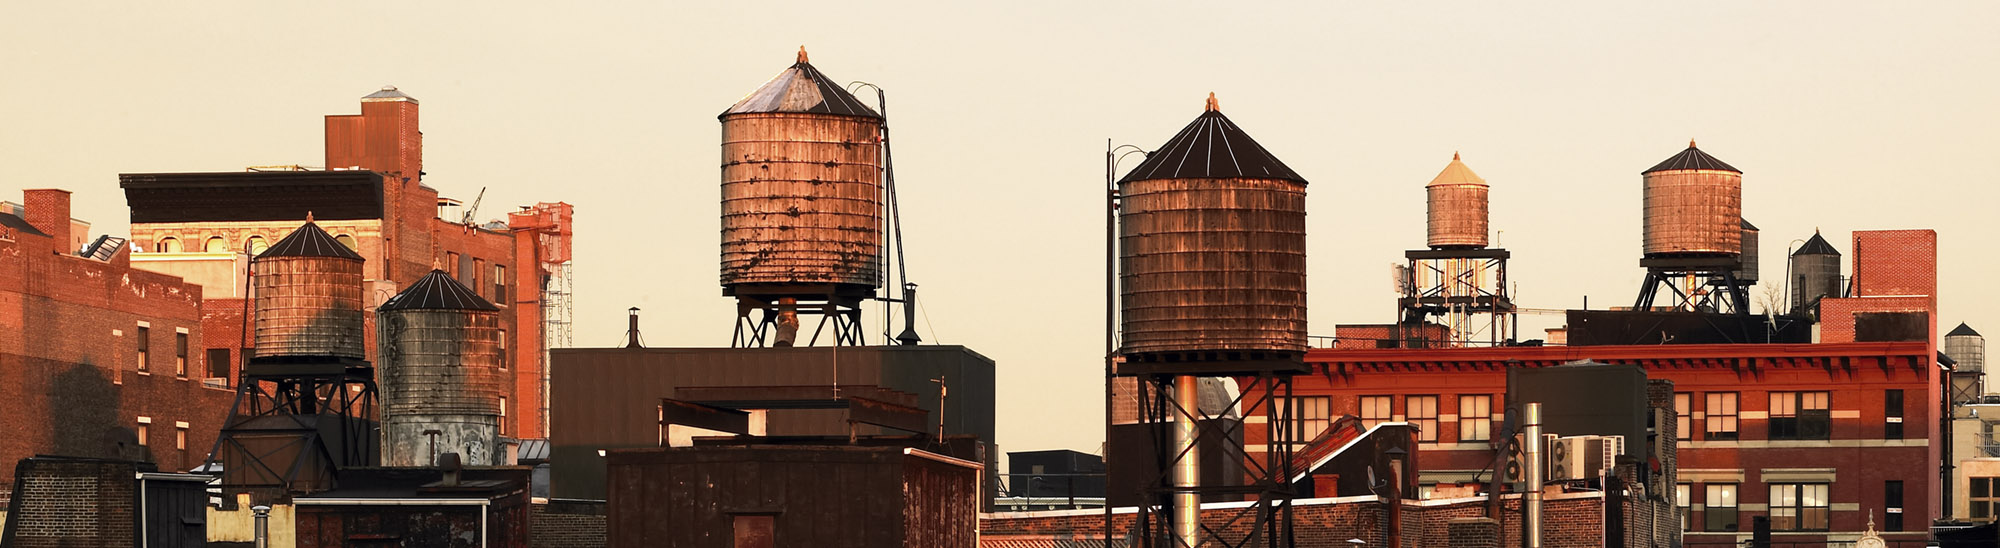 WaterTowers_Pan.jpg